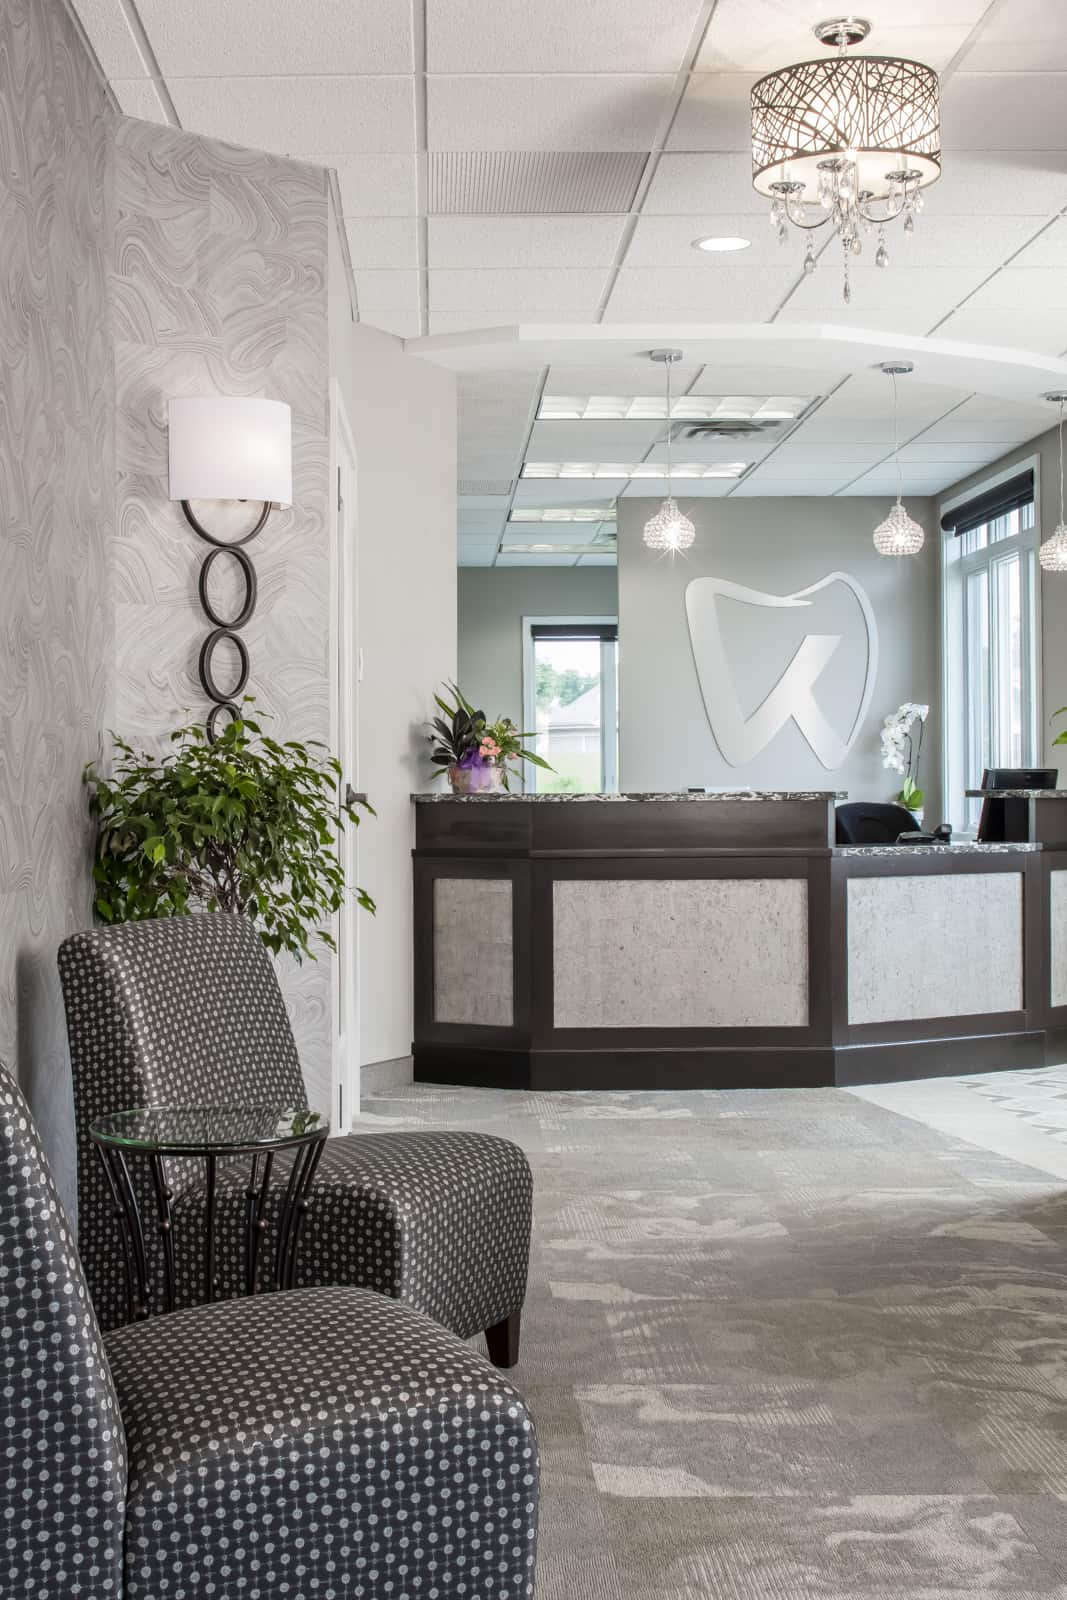 Dental Office Interiors, Dental Office Interior Design